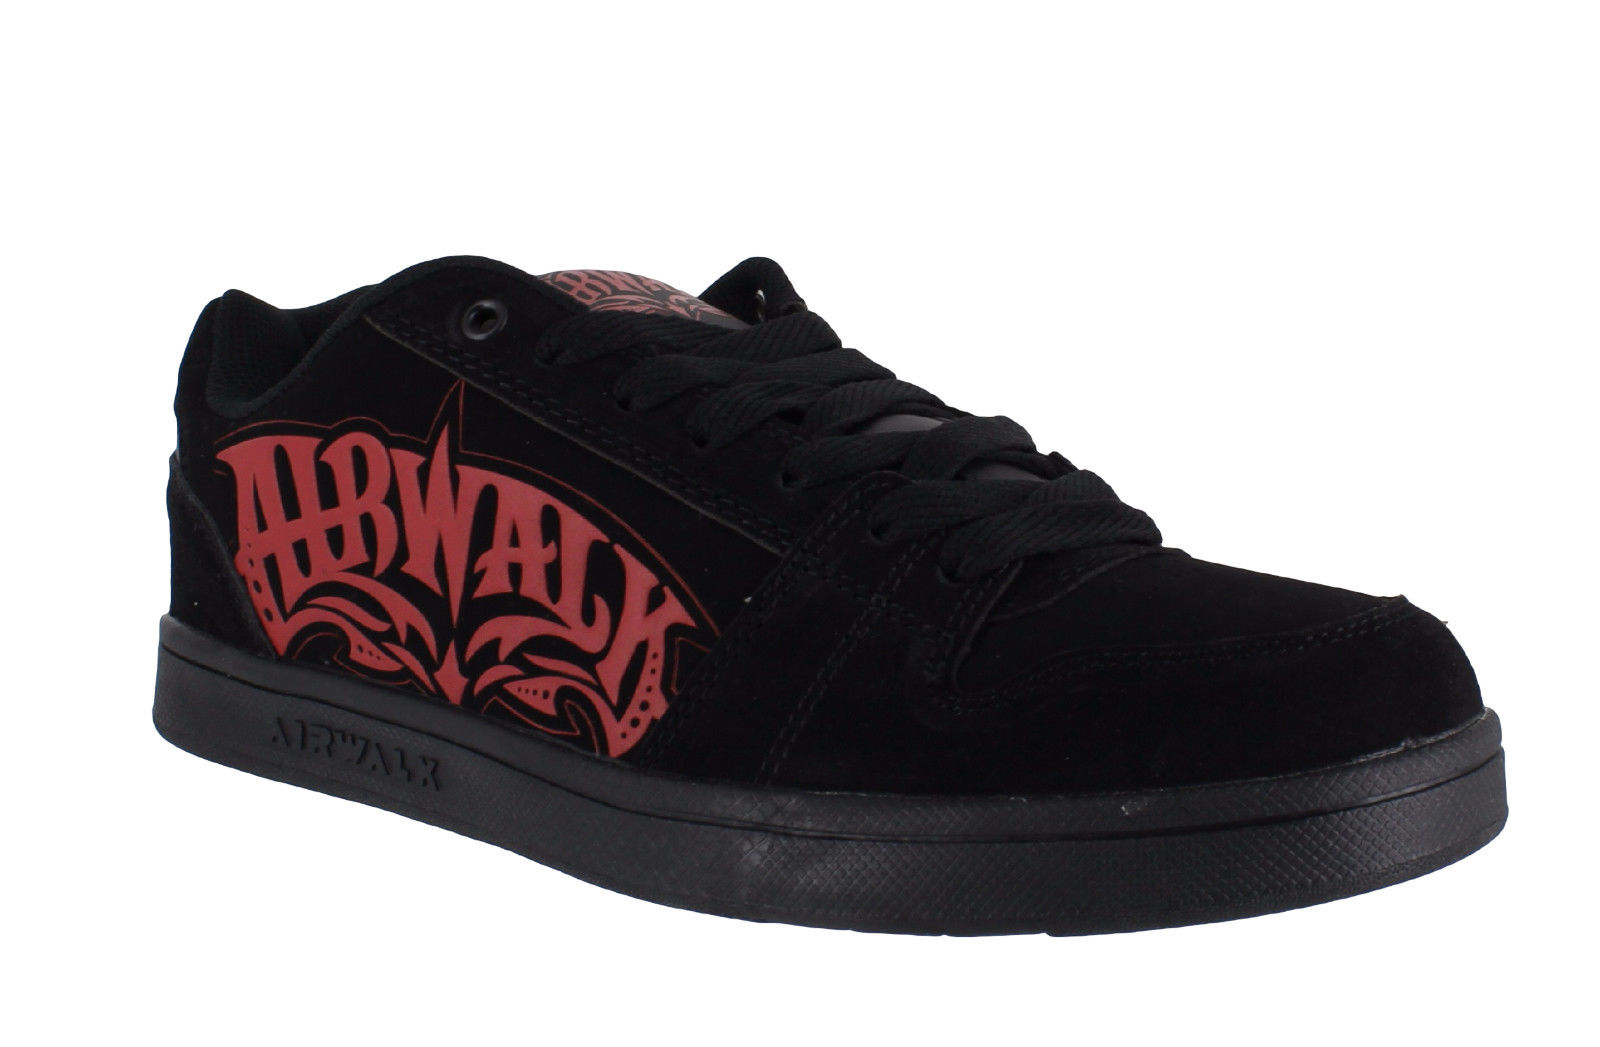 Airwalk Outlaw Skate Shoes Size